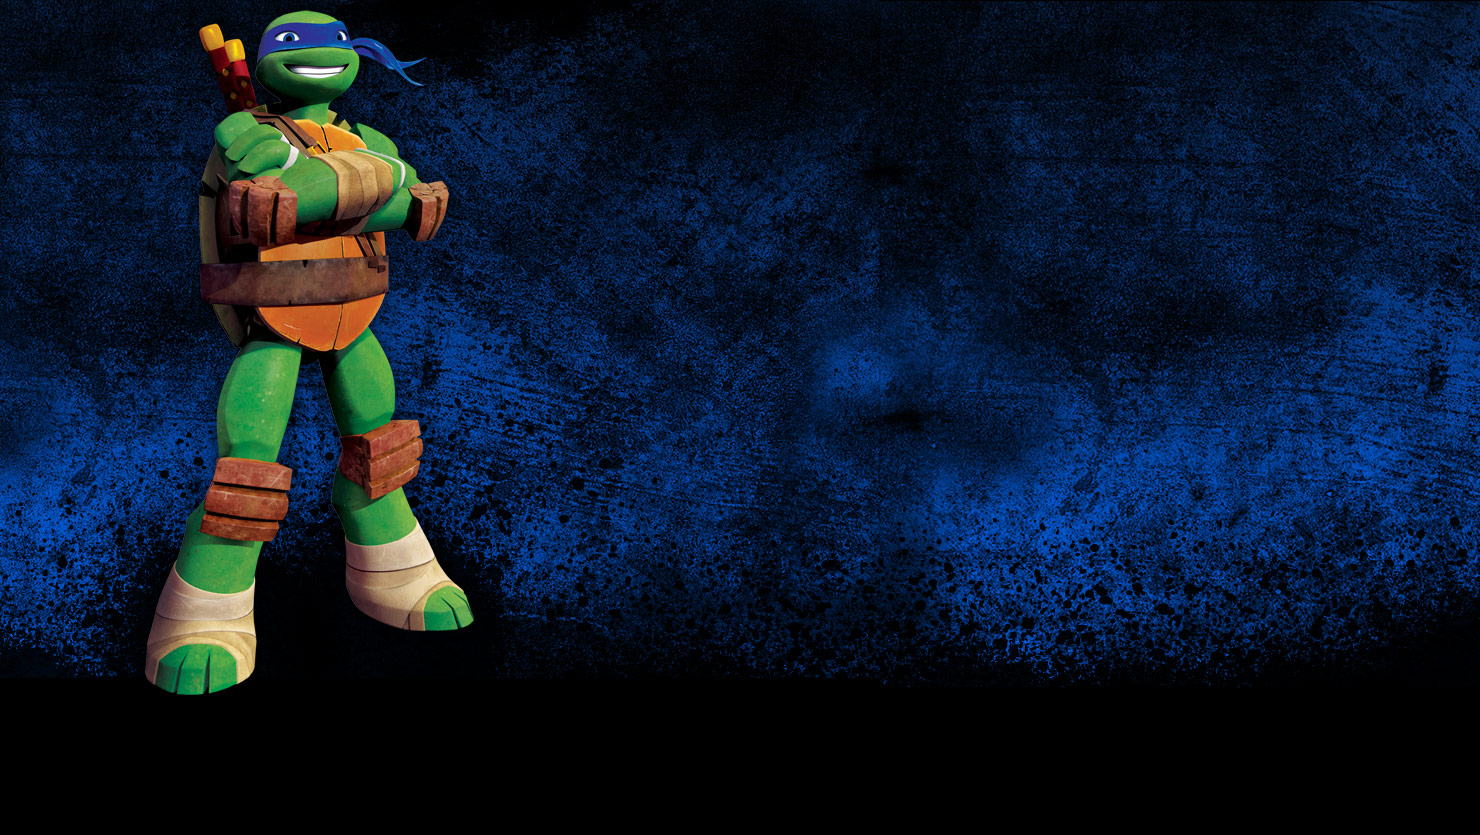 TMNT 2012 wallpapers (2) 1480x835